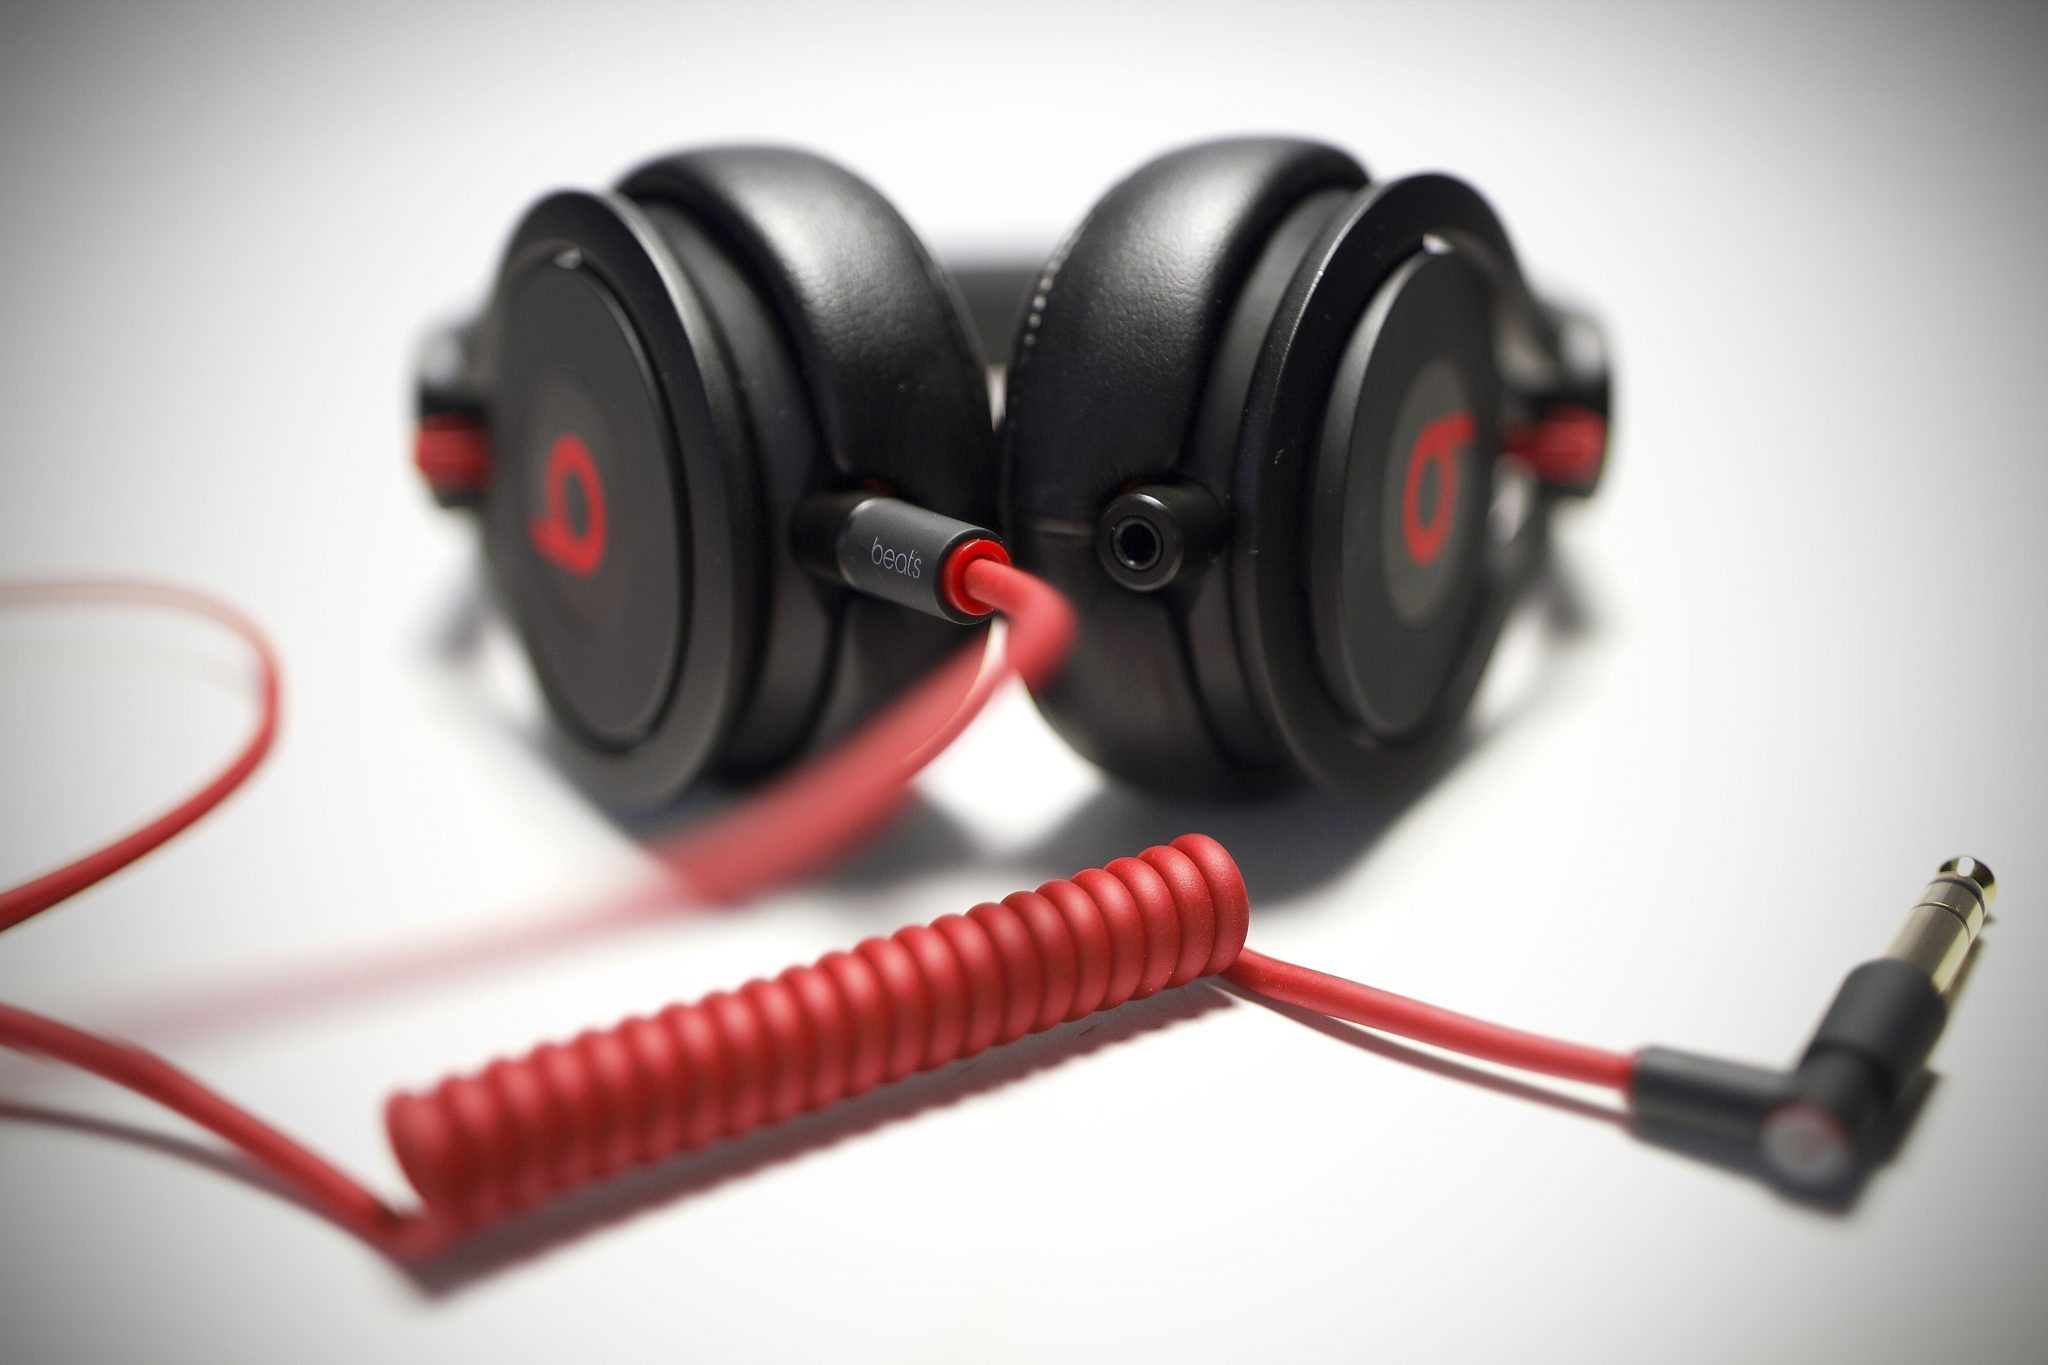 beat by dre mixr_10 review beats by dre mixr dj headphones djworx Beats Headphones Wiring-Diagram at creativeand.co